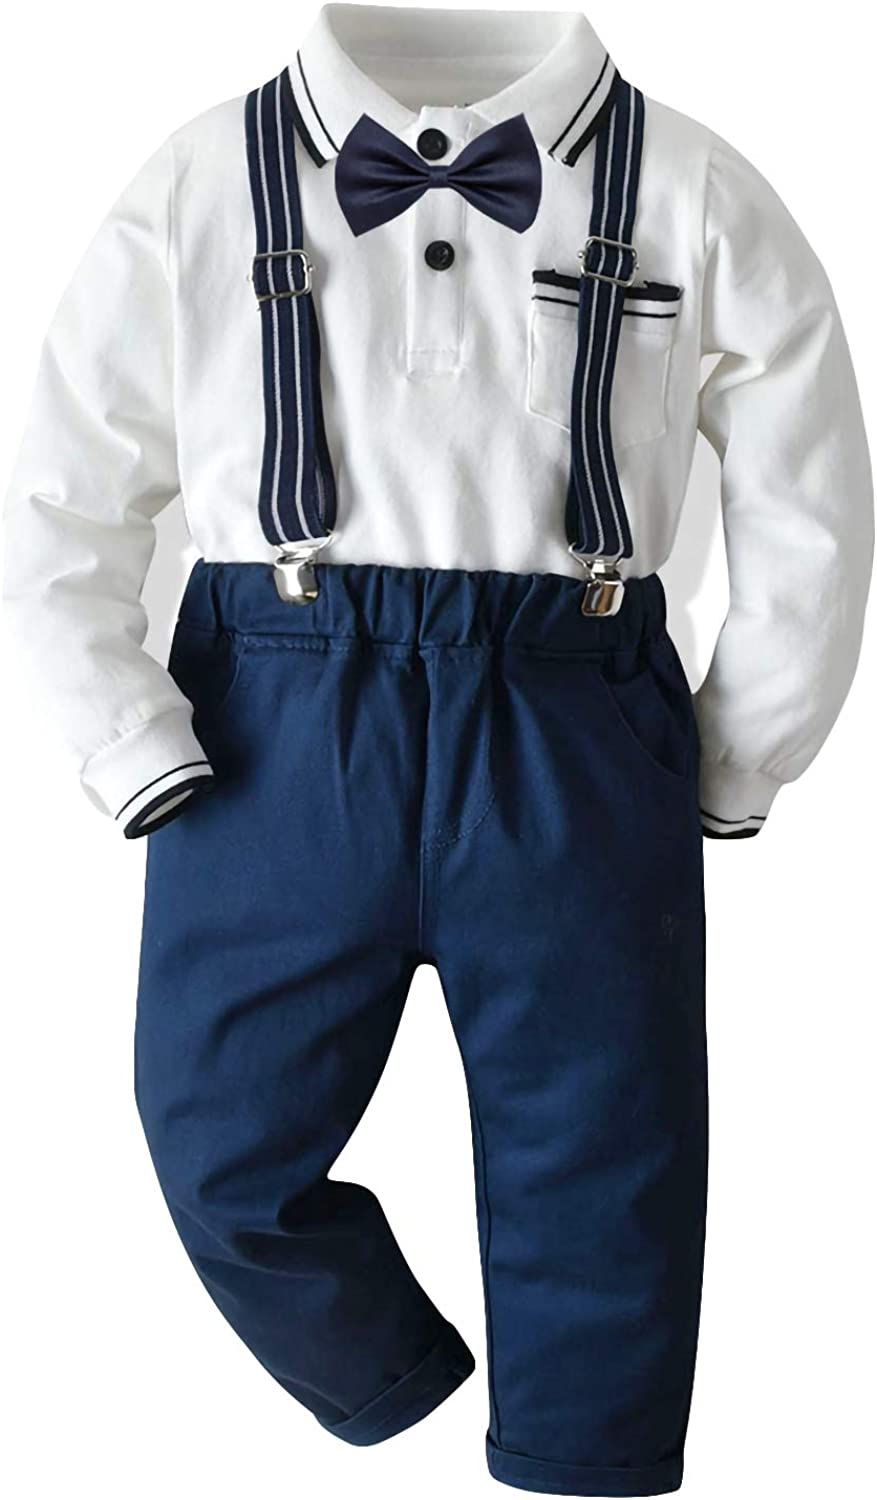 Haokaini Baby Boy Gentleman Outfit Child Boy Fashion Suit Clothes Long Sleeve Bow Tie Shirt Suspenders Long Pants Clothes Set